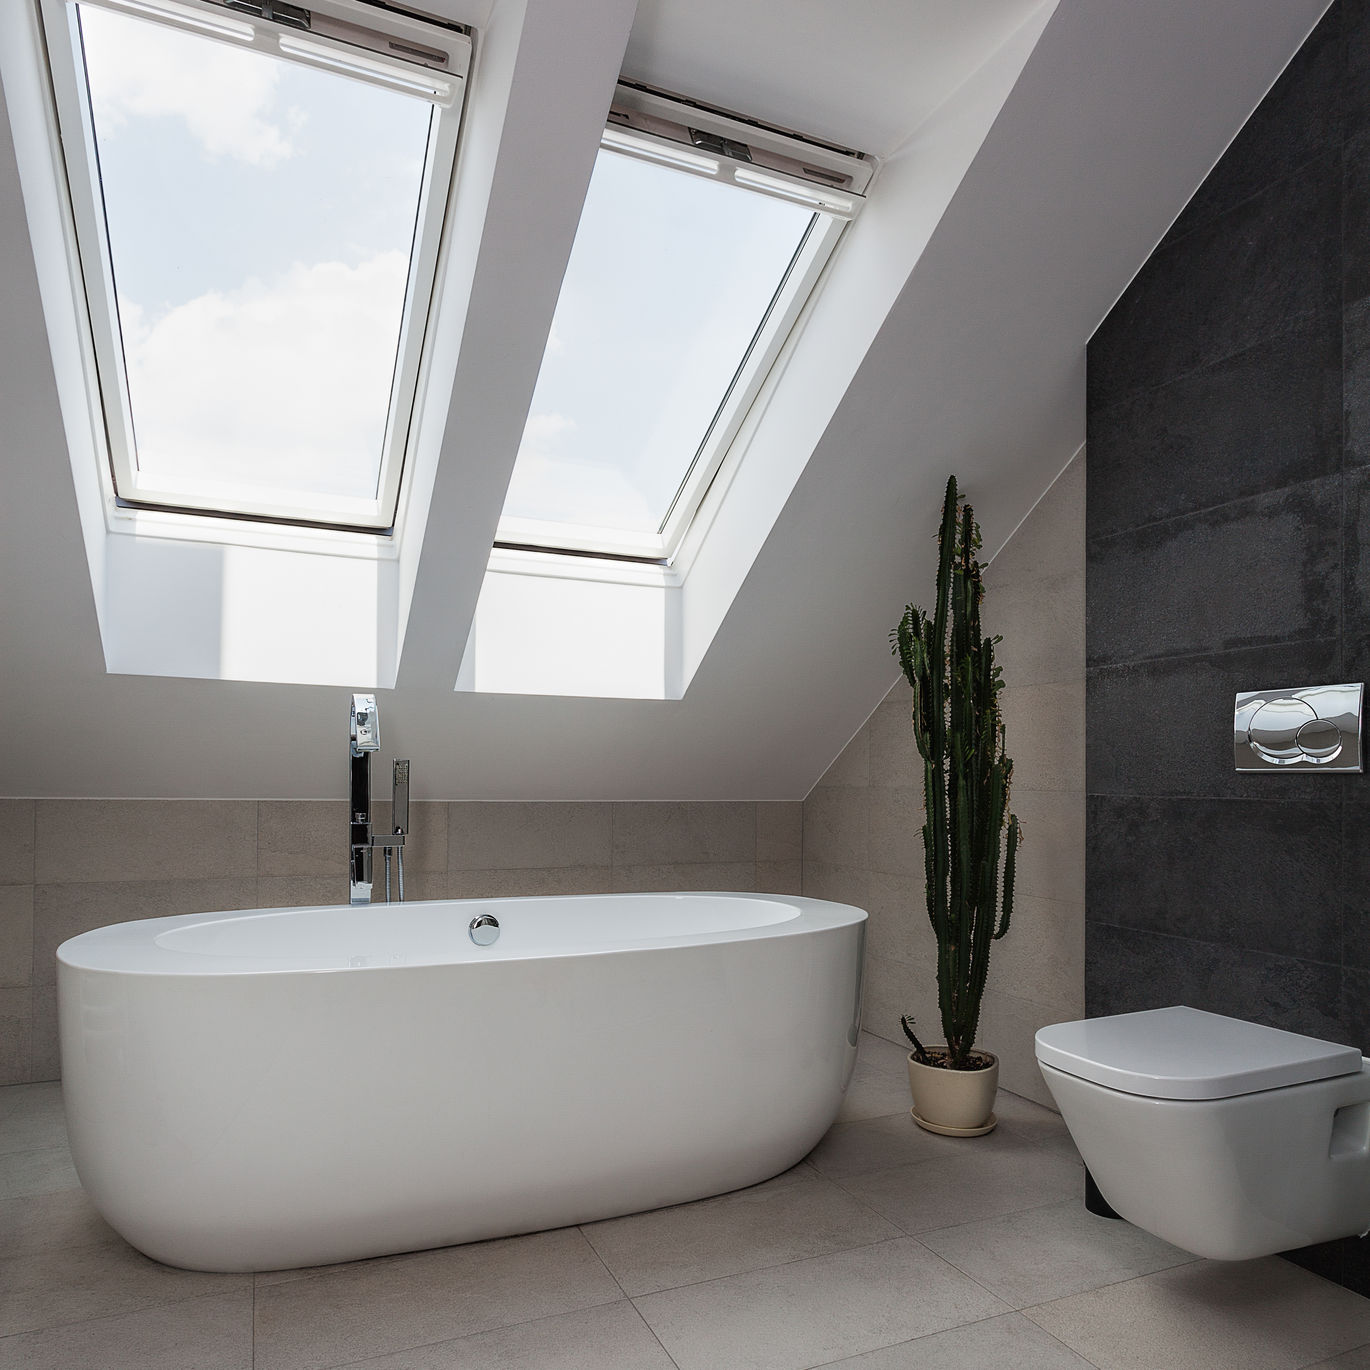 Loft conversion attic conversion swansea bridgend for Bathroom ideas loft conversion